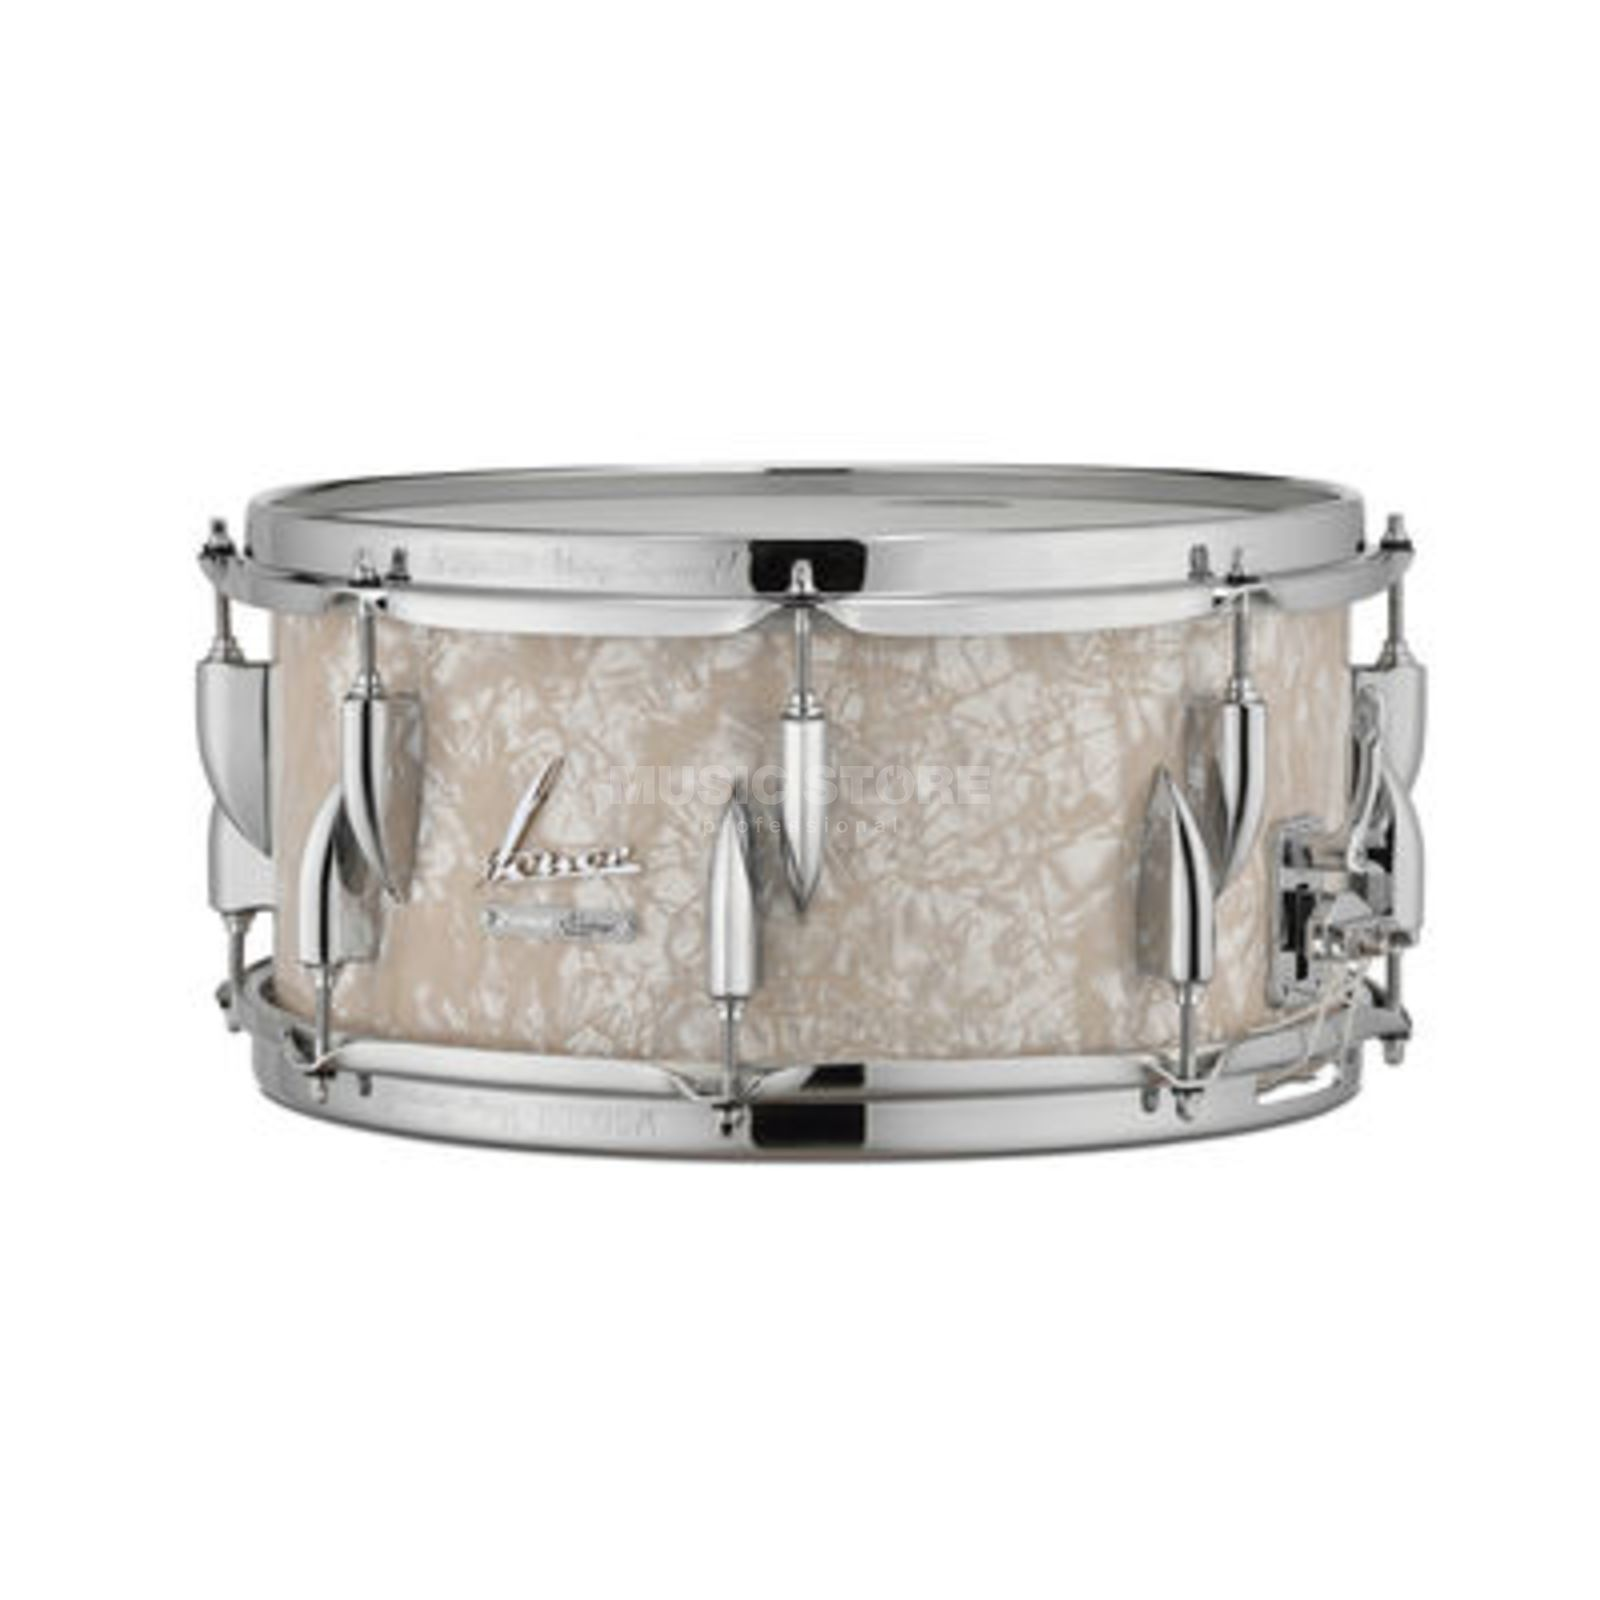 "Sonor Vintage Series Snare 14""x6.5"" Vintage Pearl Product Image"